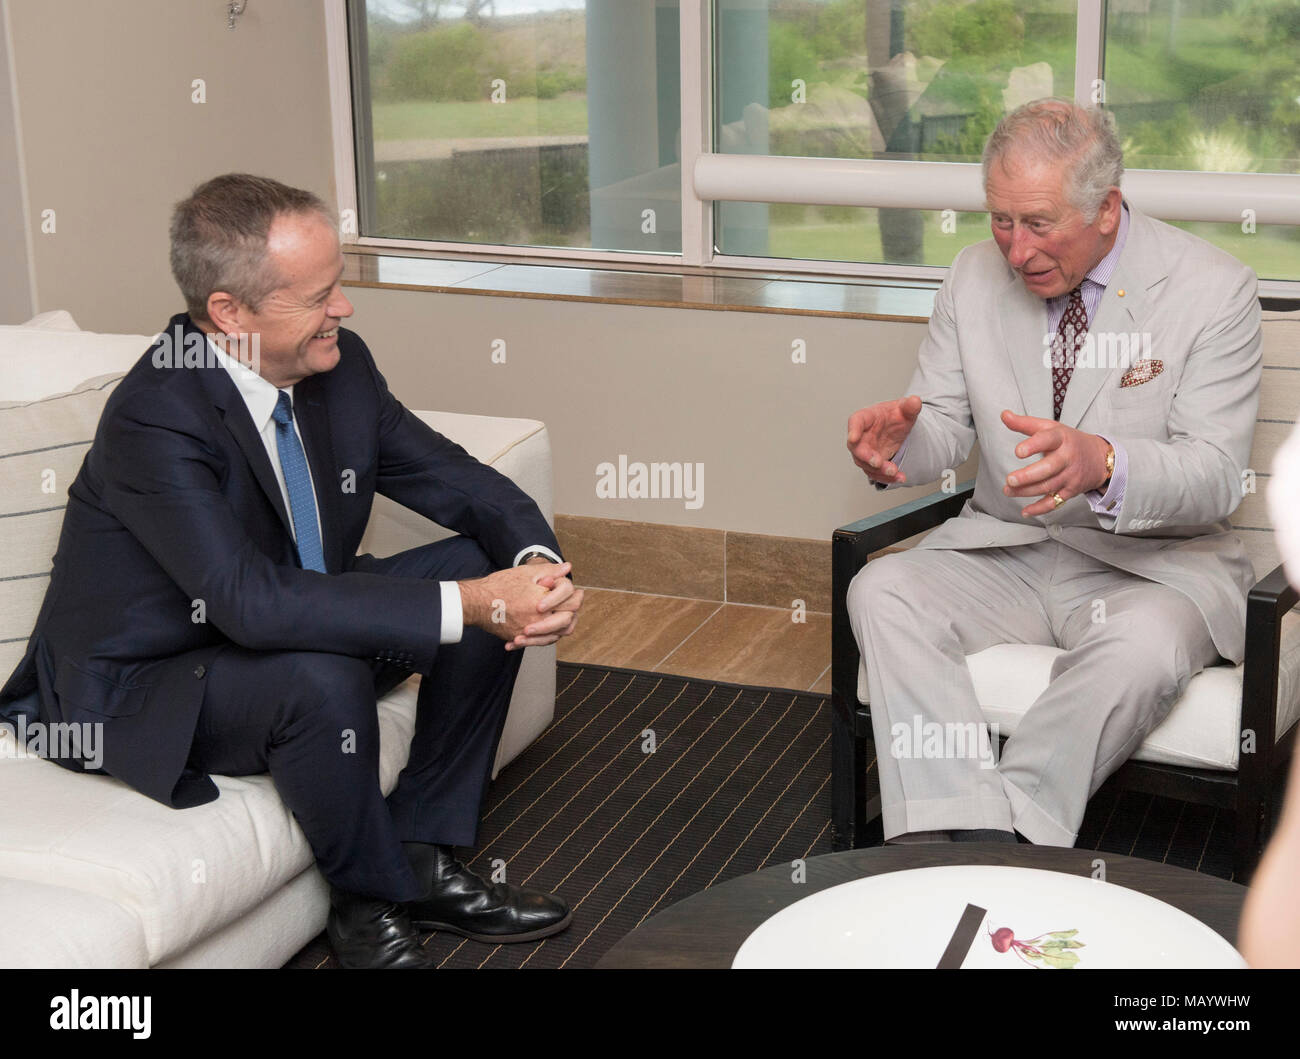 The Prince of Wales (right) meeting with leader of the